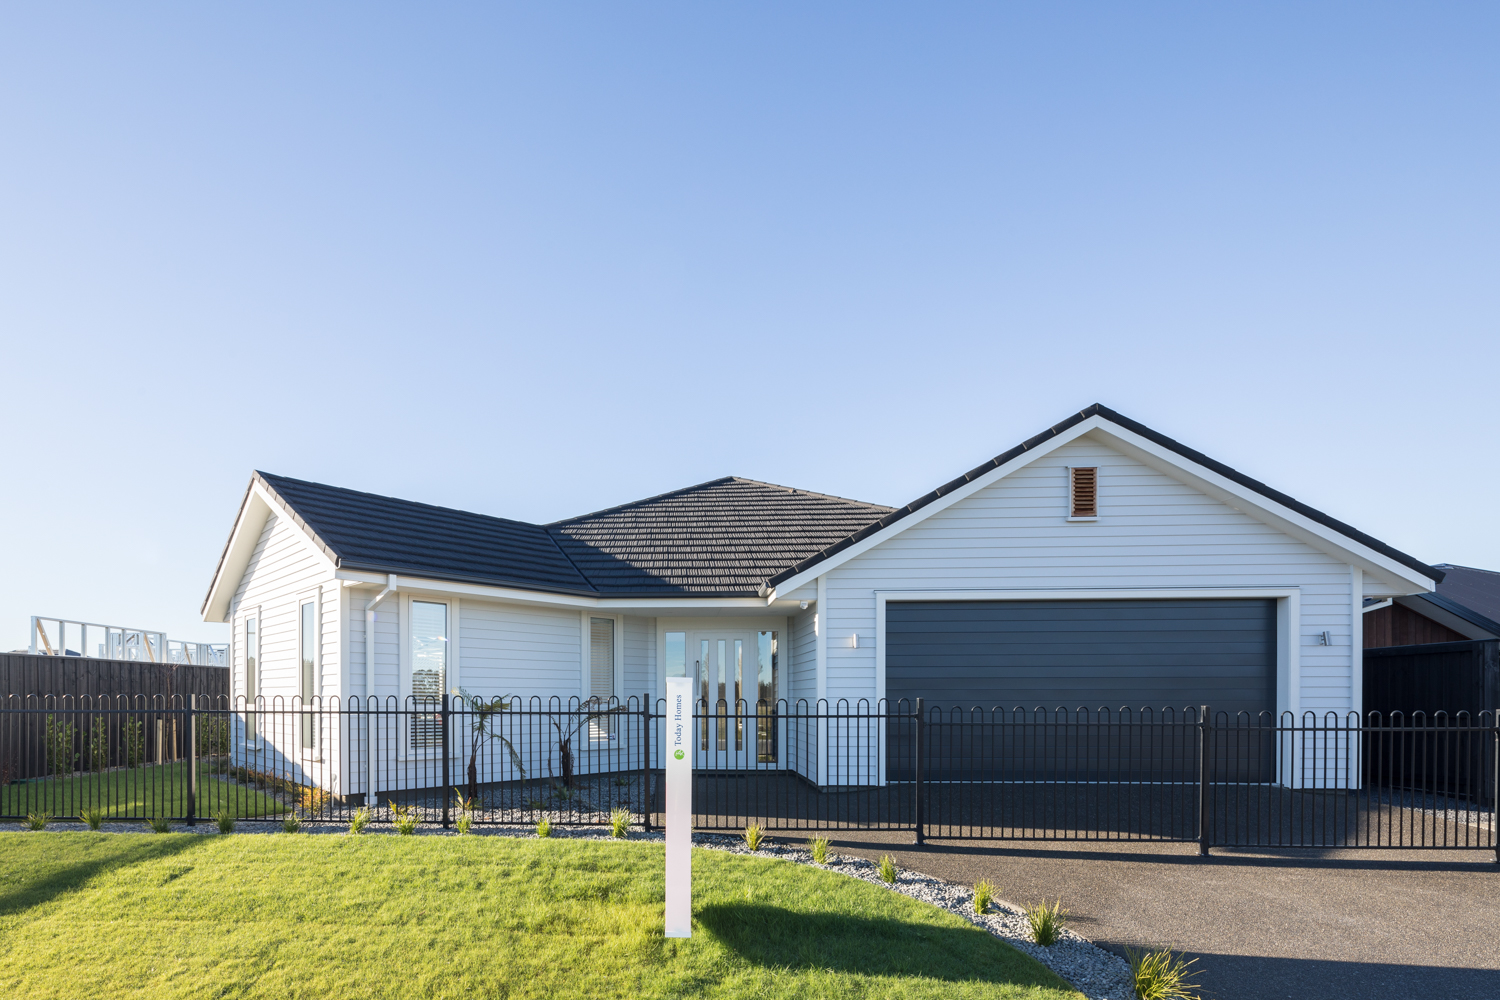 TH_Rolleston_Showhomes_032.jpg